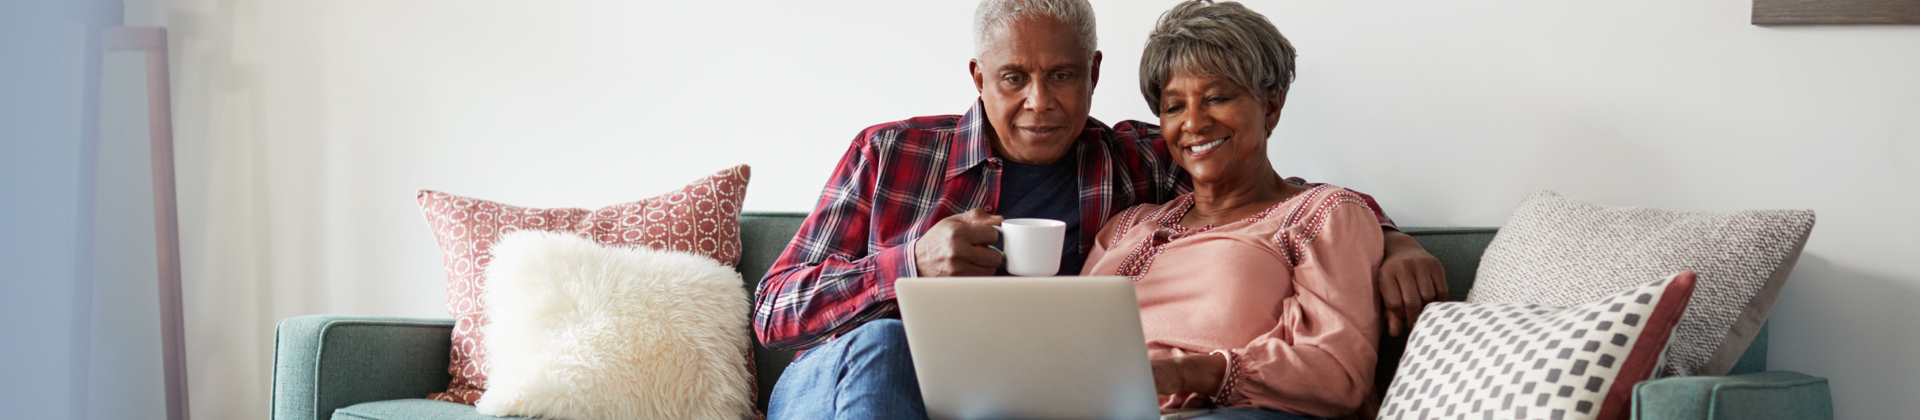 A senior couple sit on the couch and look at a laptop